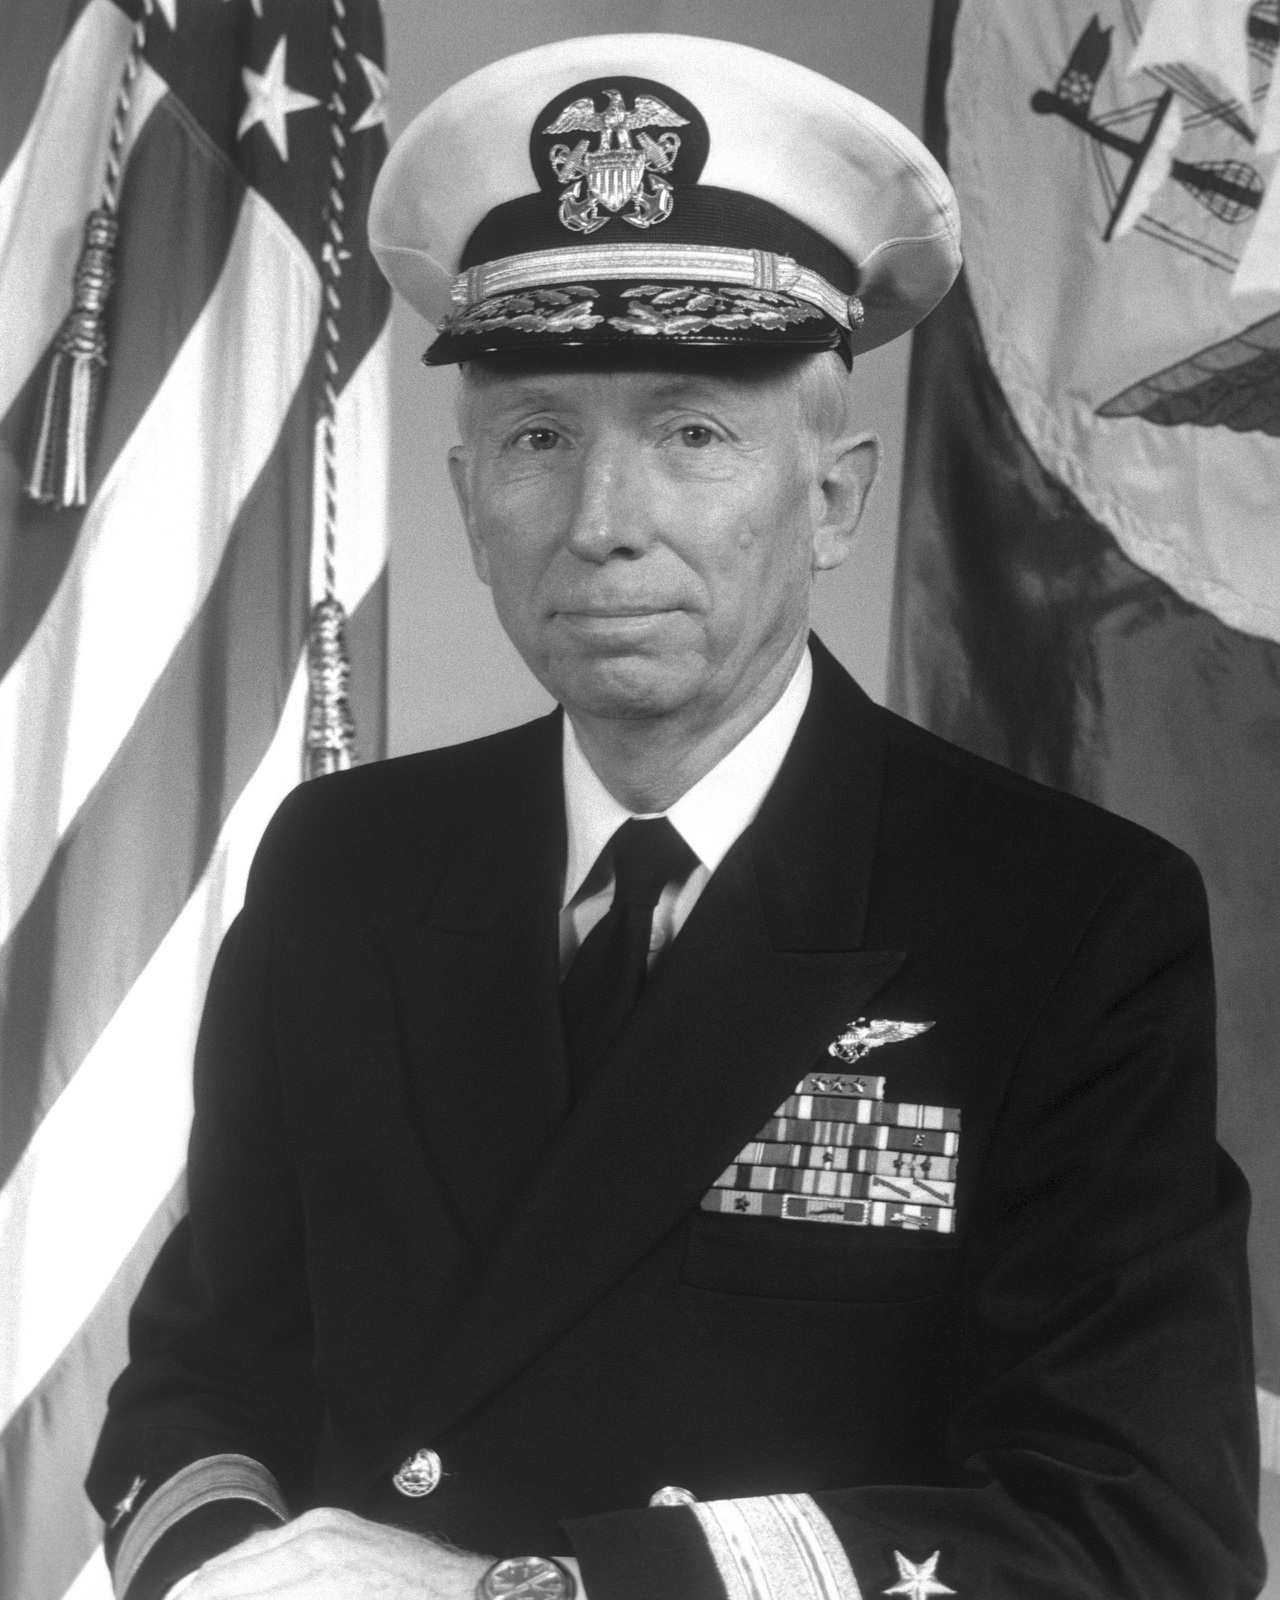 Rear Admiral (lower half) James E. Taylor, USN (covered)